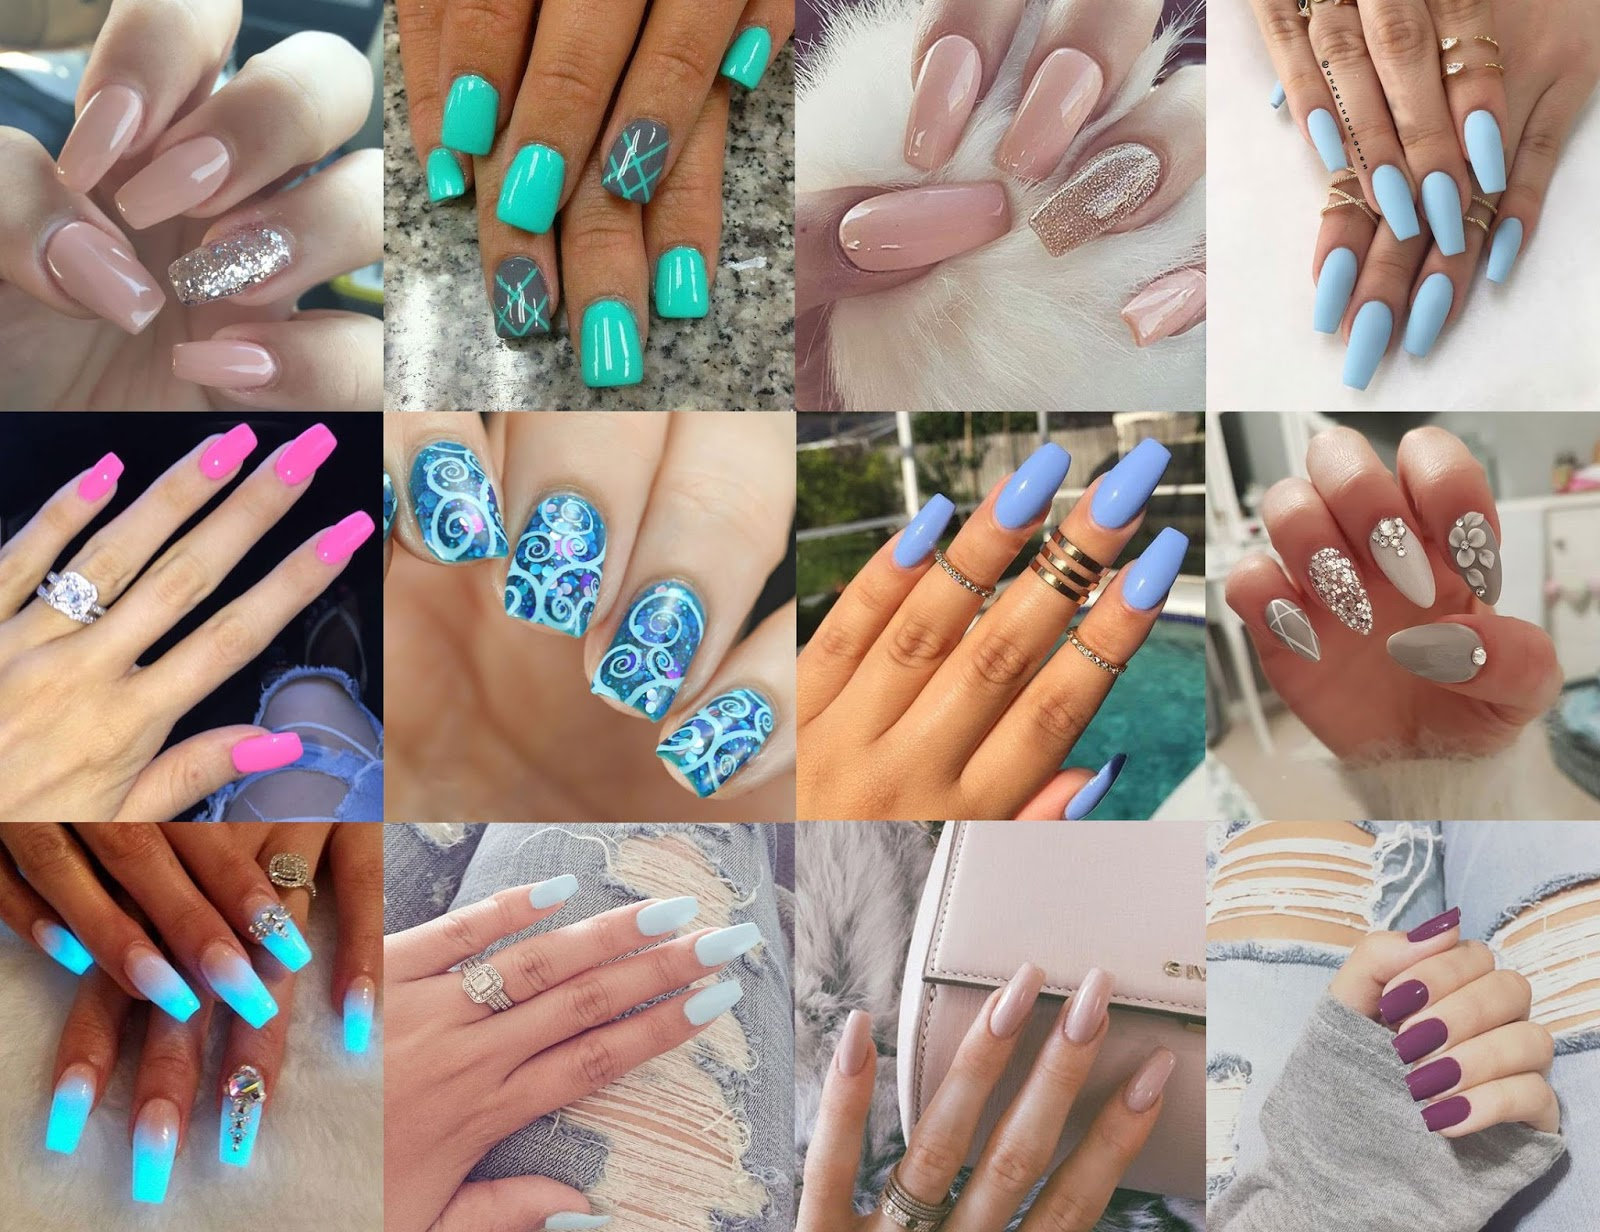 10 Best Ideas About Acrylic Nail Art for Nail Technicians